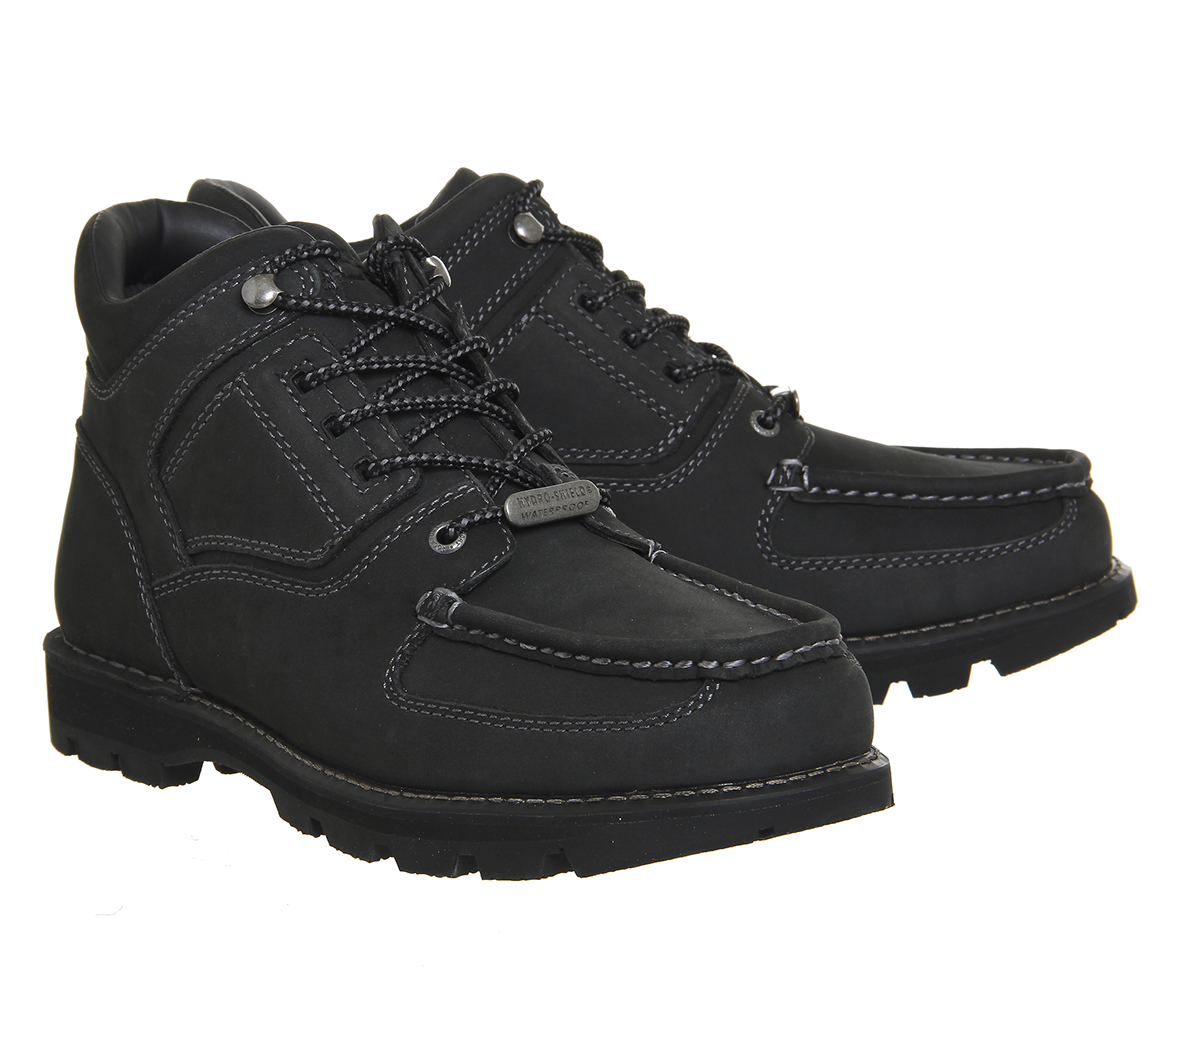 Rockport Umbwe Boots in Gray for Men